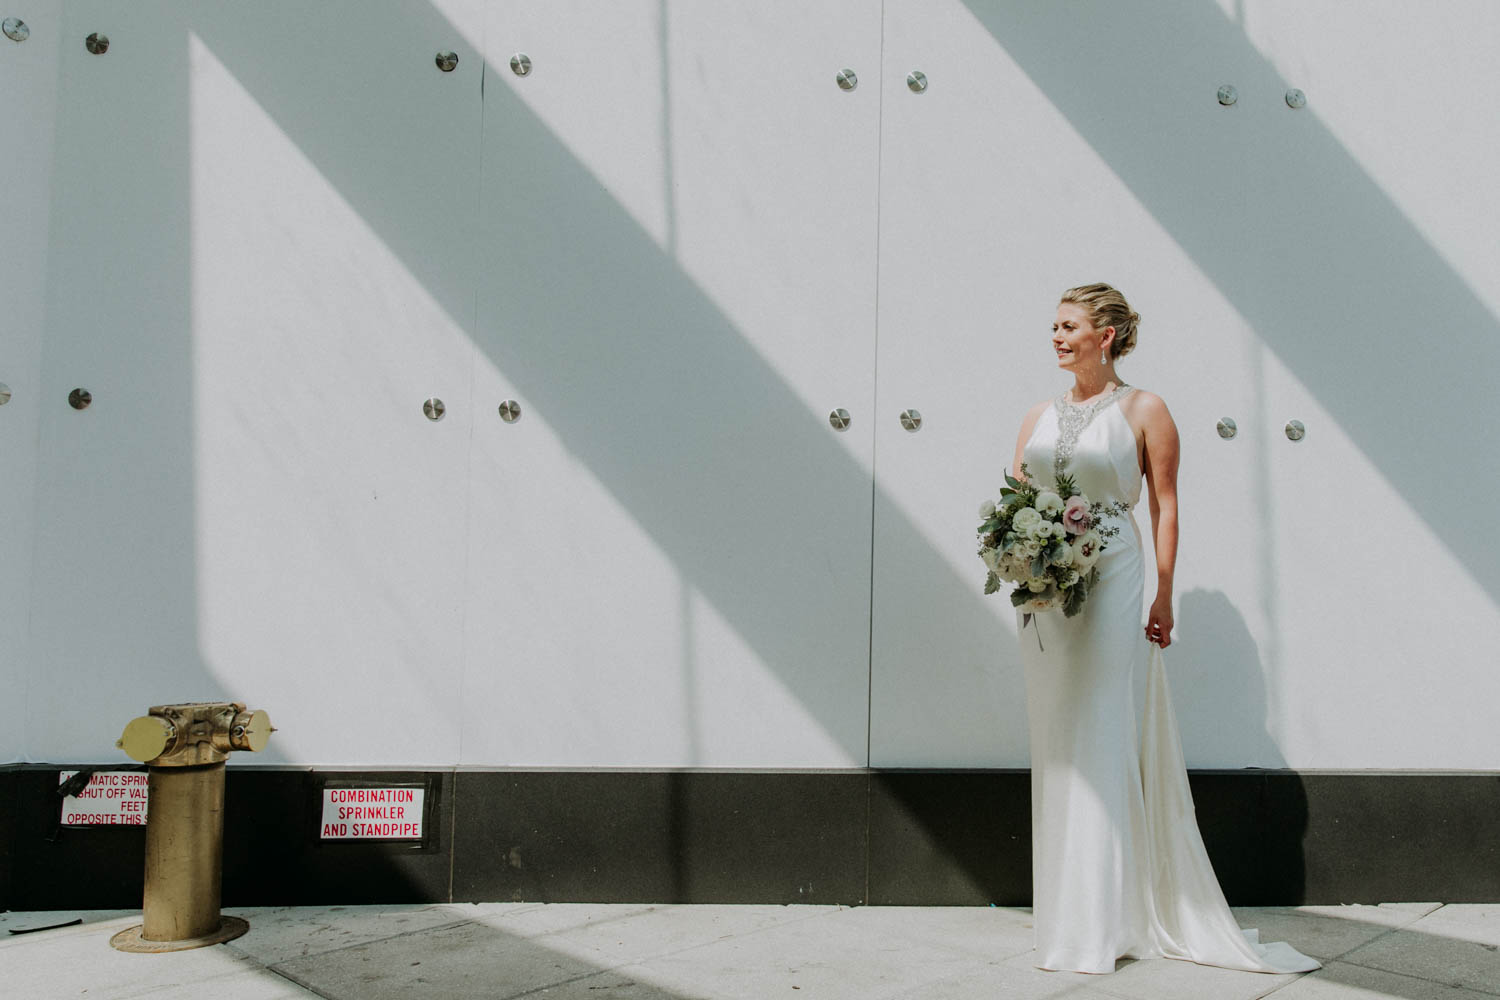 Tall & Small Events NYC, L&W, Modern Industrial OutdoorCross-CulturalBritish American Summer Wedding, New York City Real Wedding at The Foundry, LIC NY. Photo: Shannon for Amber Gress Photography